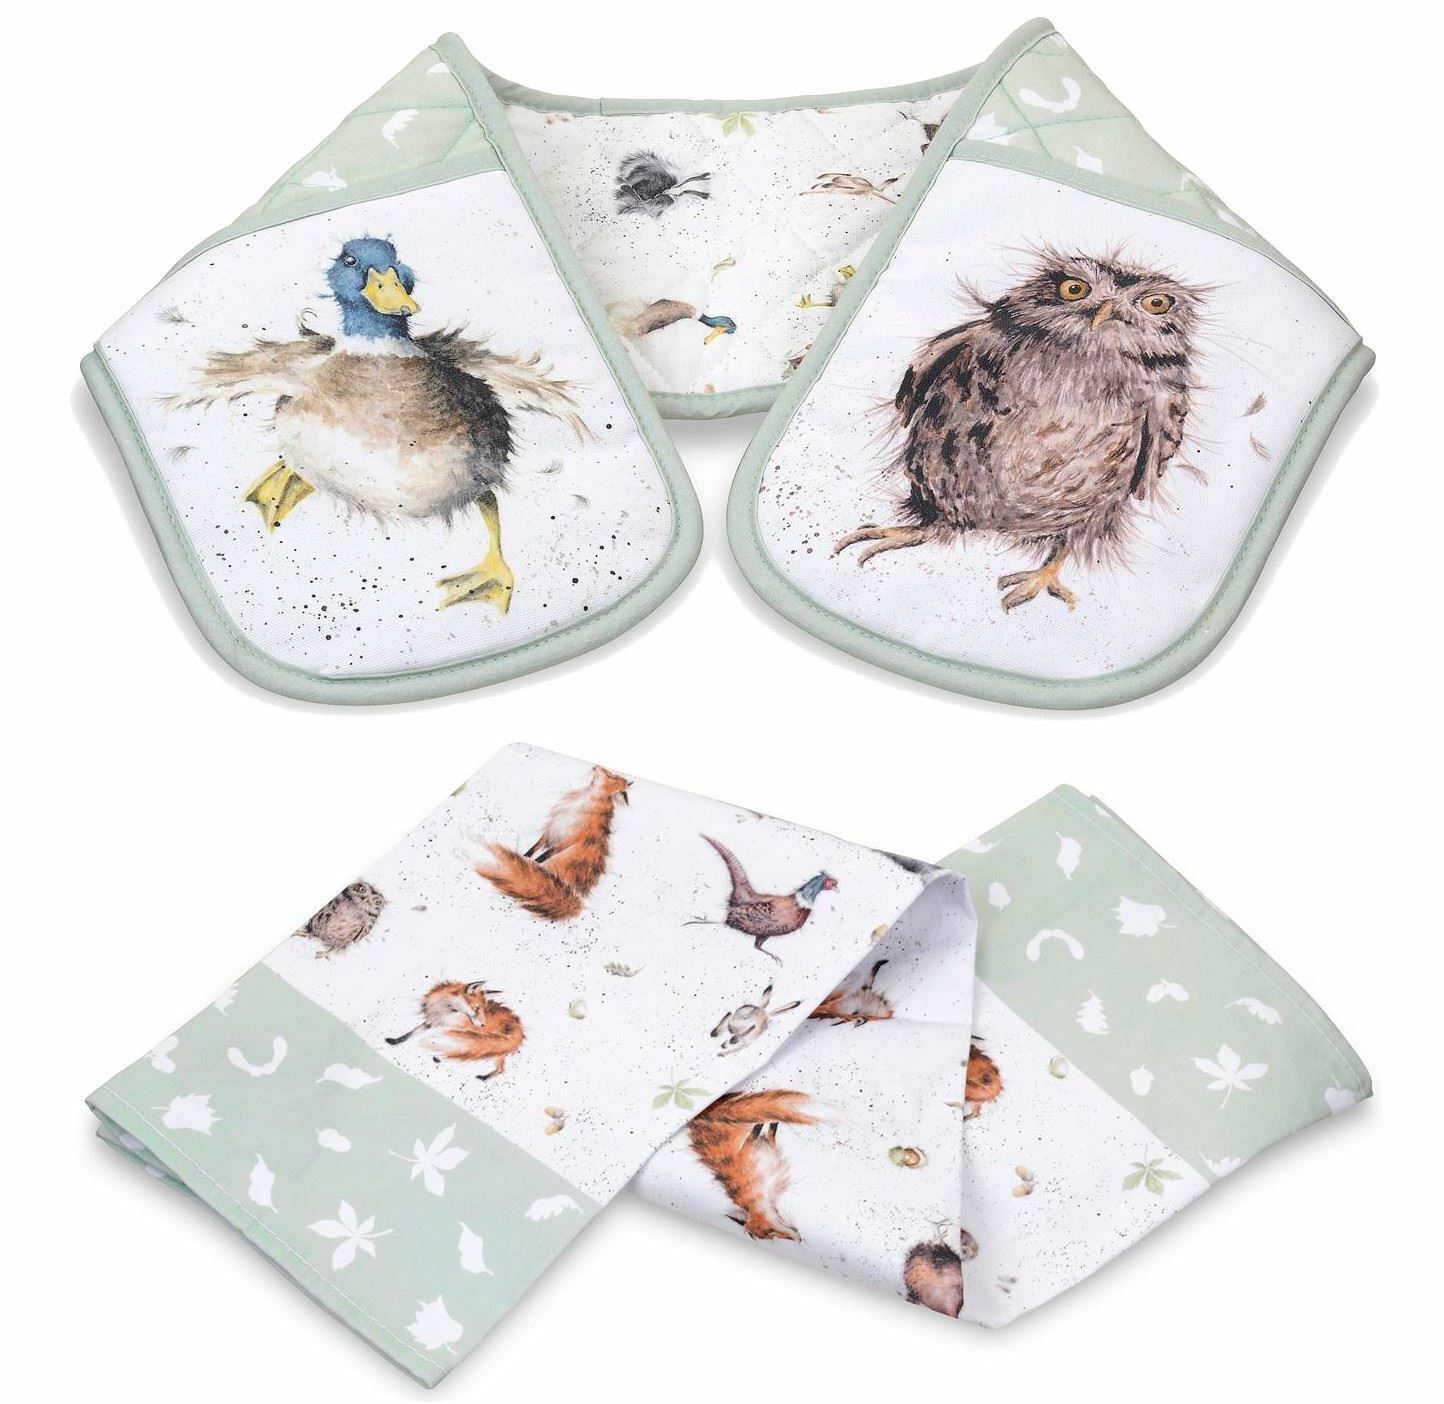 Lot de Animaux Pays Double Gant Four & Thé Serviette Fox Badger Chouette Lièvre